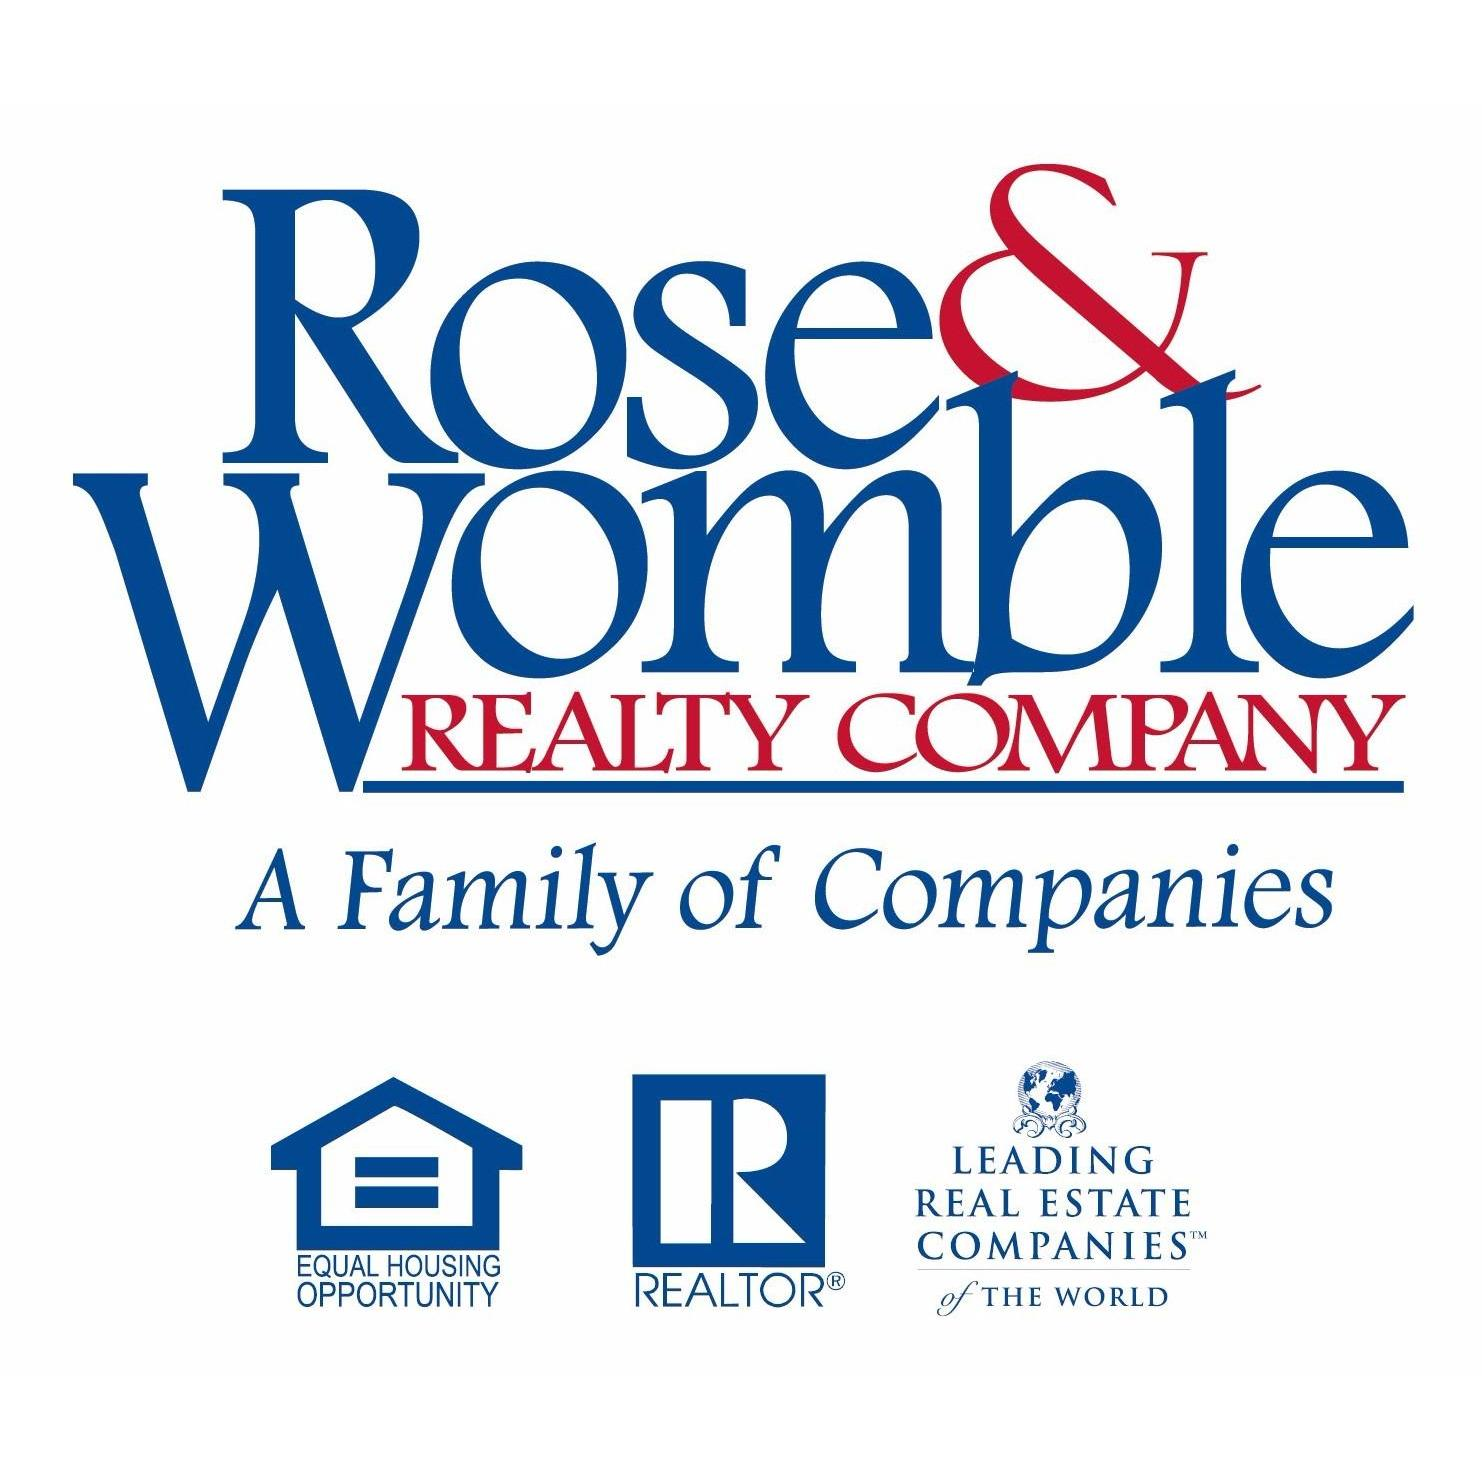 Rose & Womble Realty Company image 2